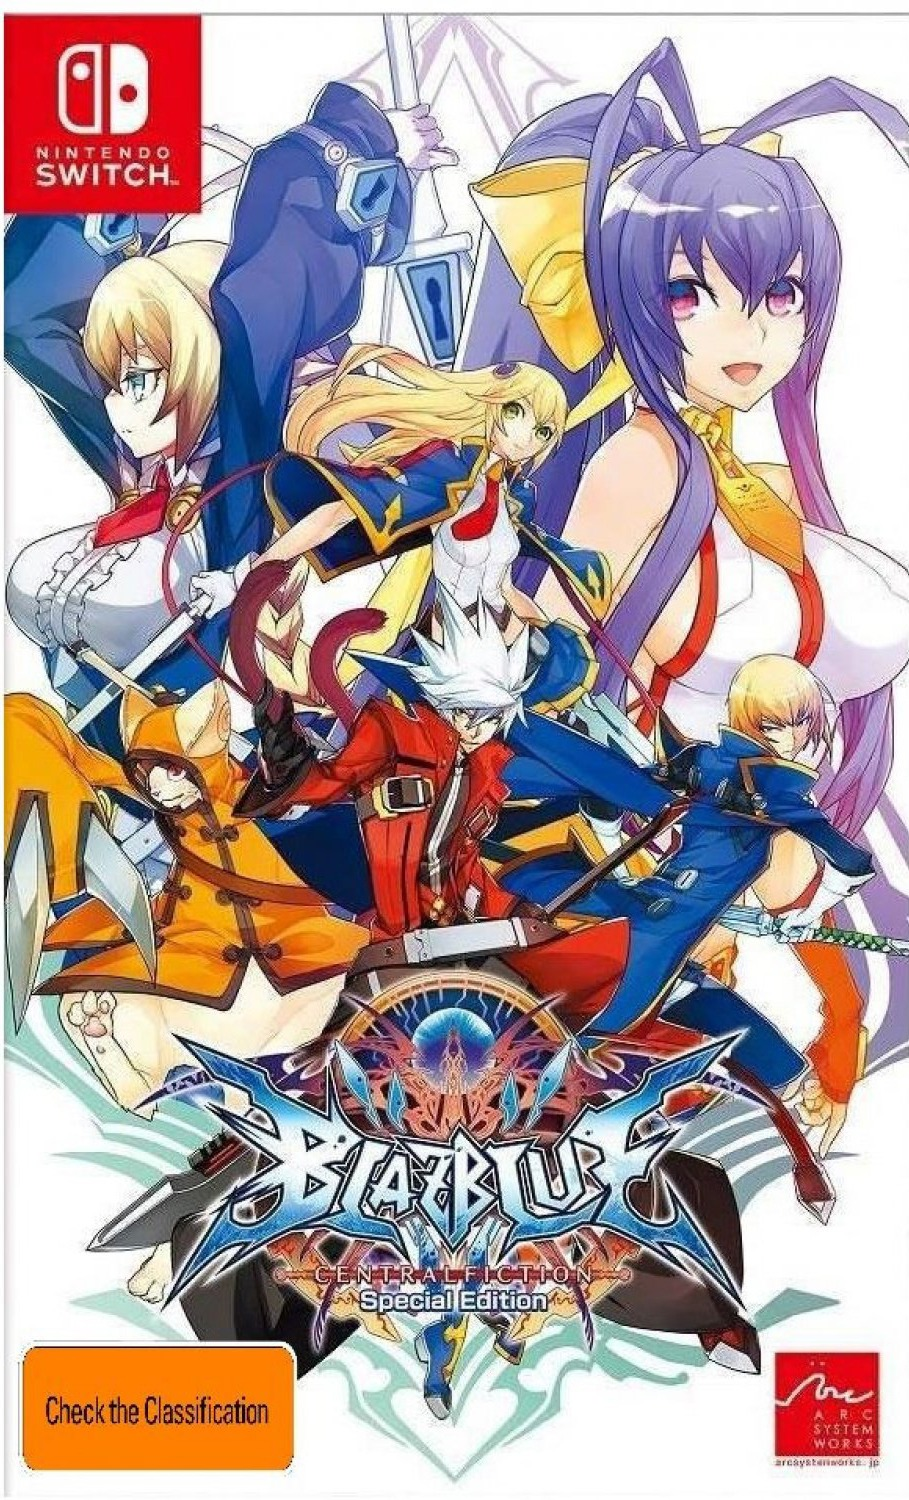 BlazBlue Central Fiction Special Edition